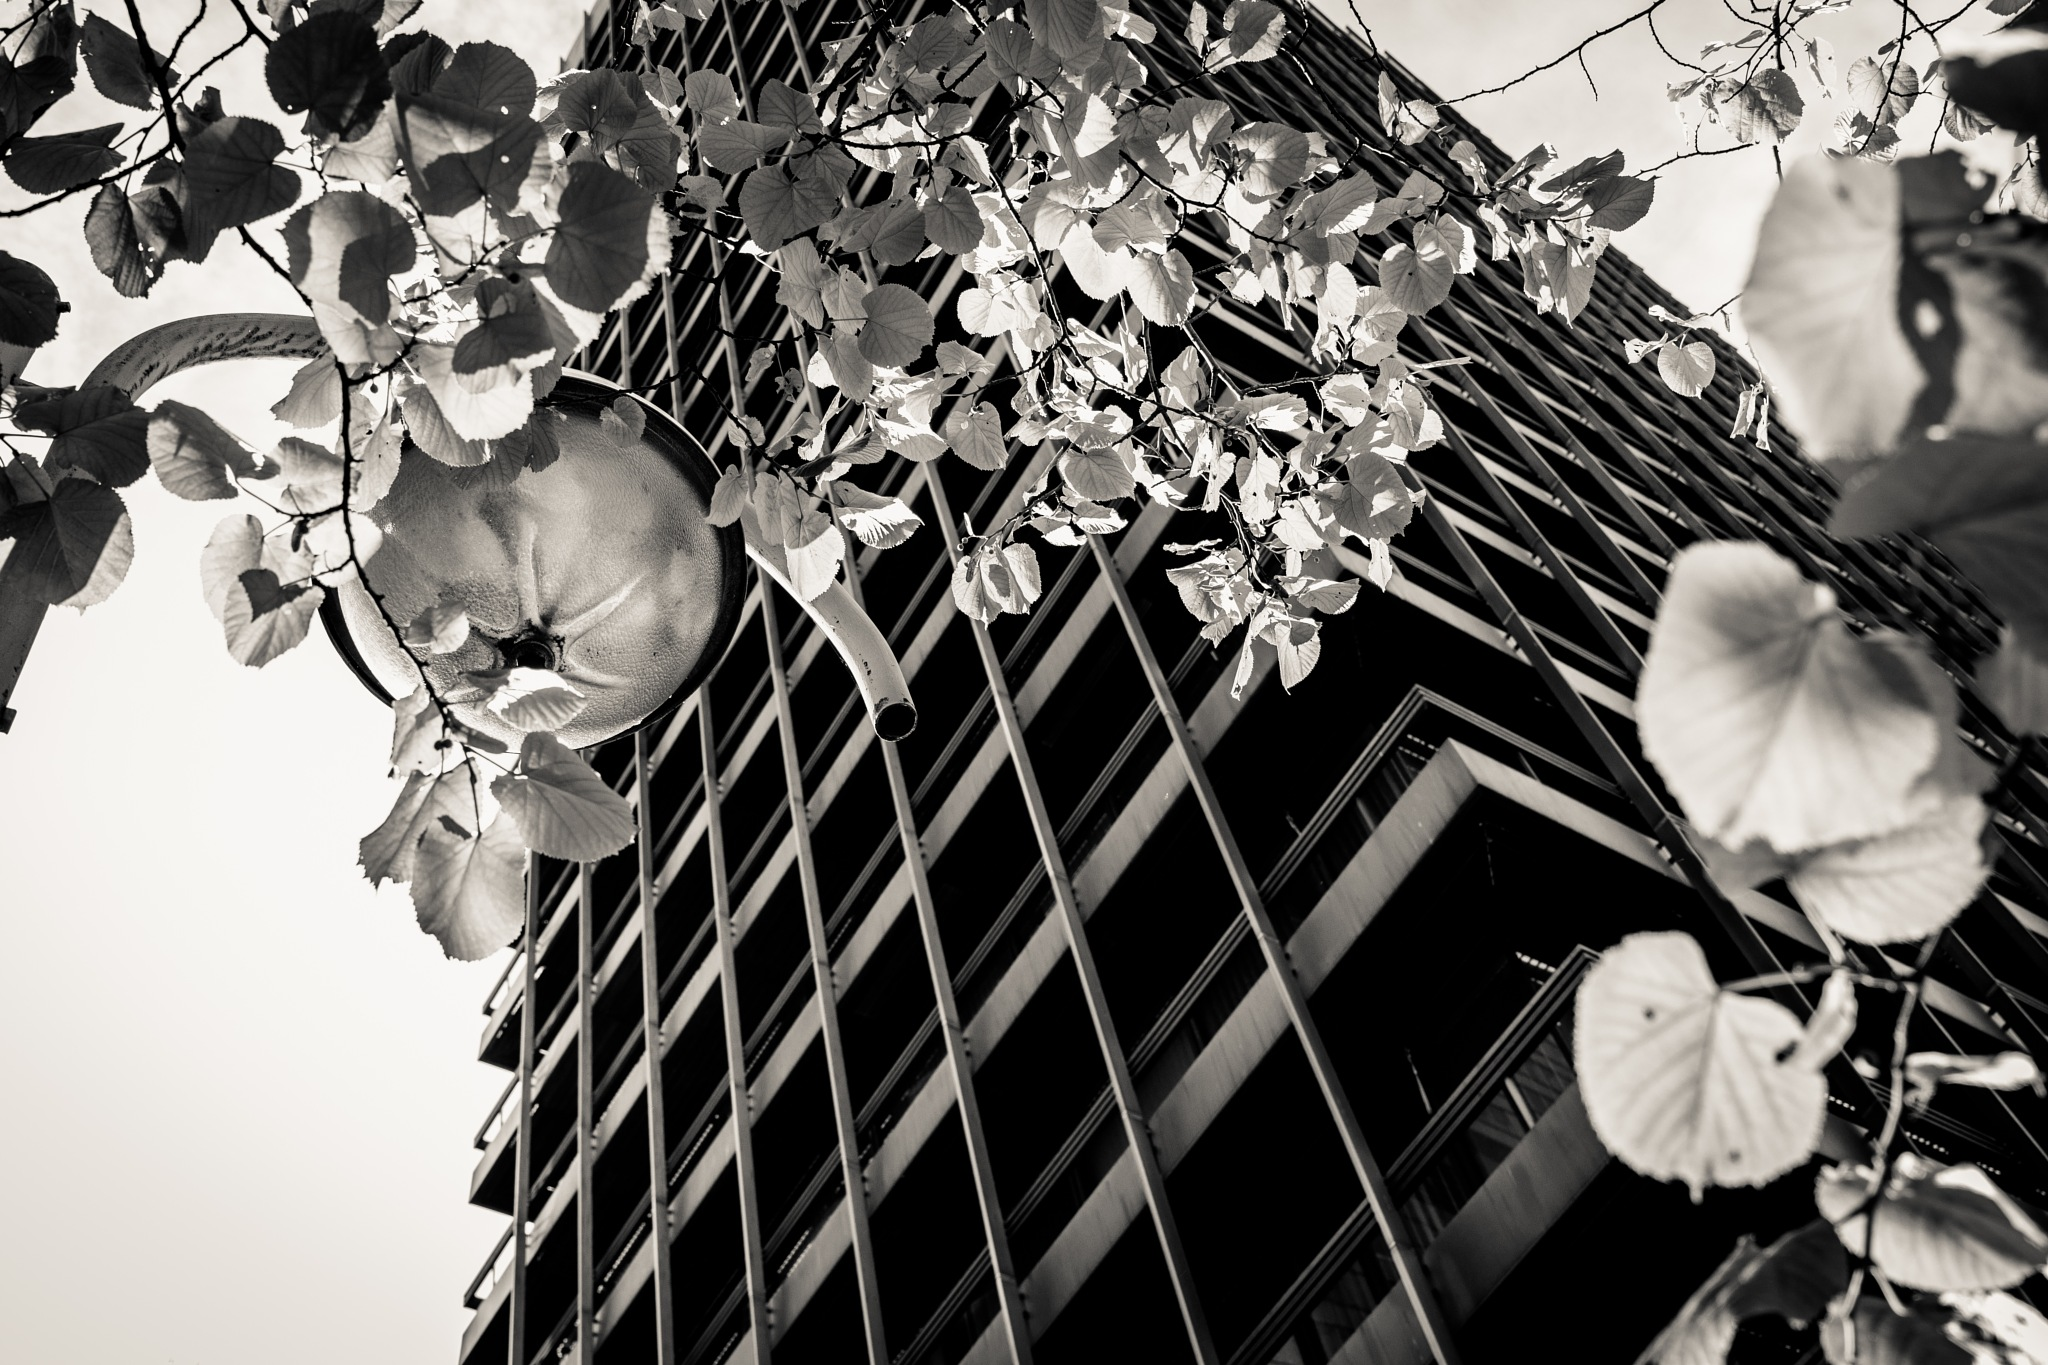 perspective of a city tree  by Stefan Lauterbach